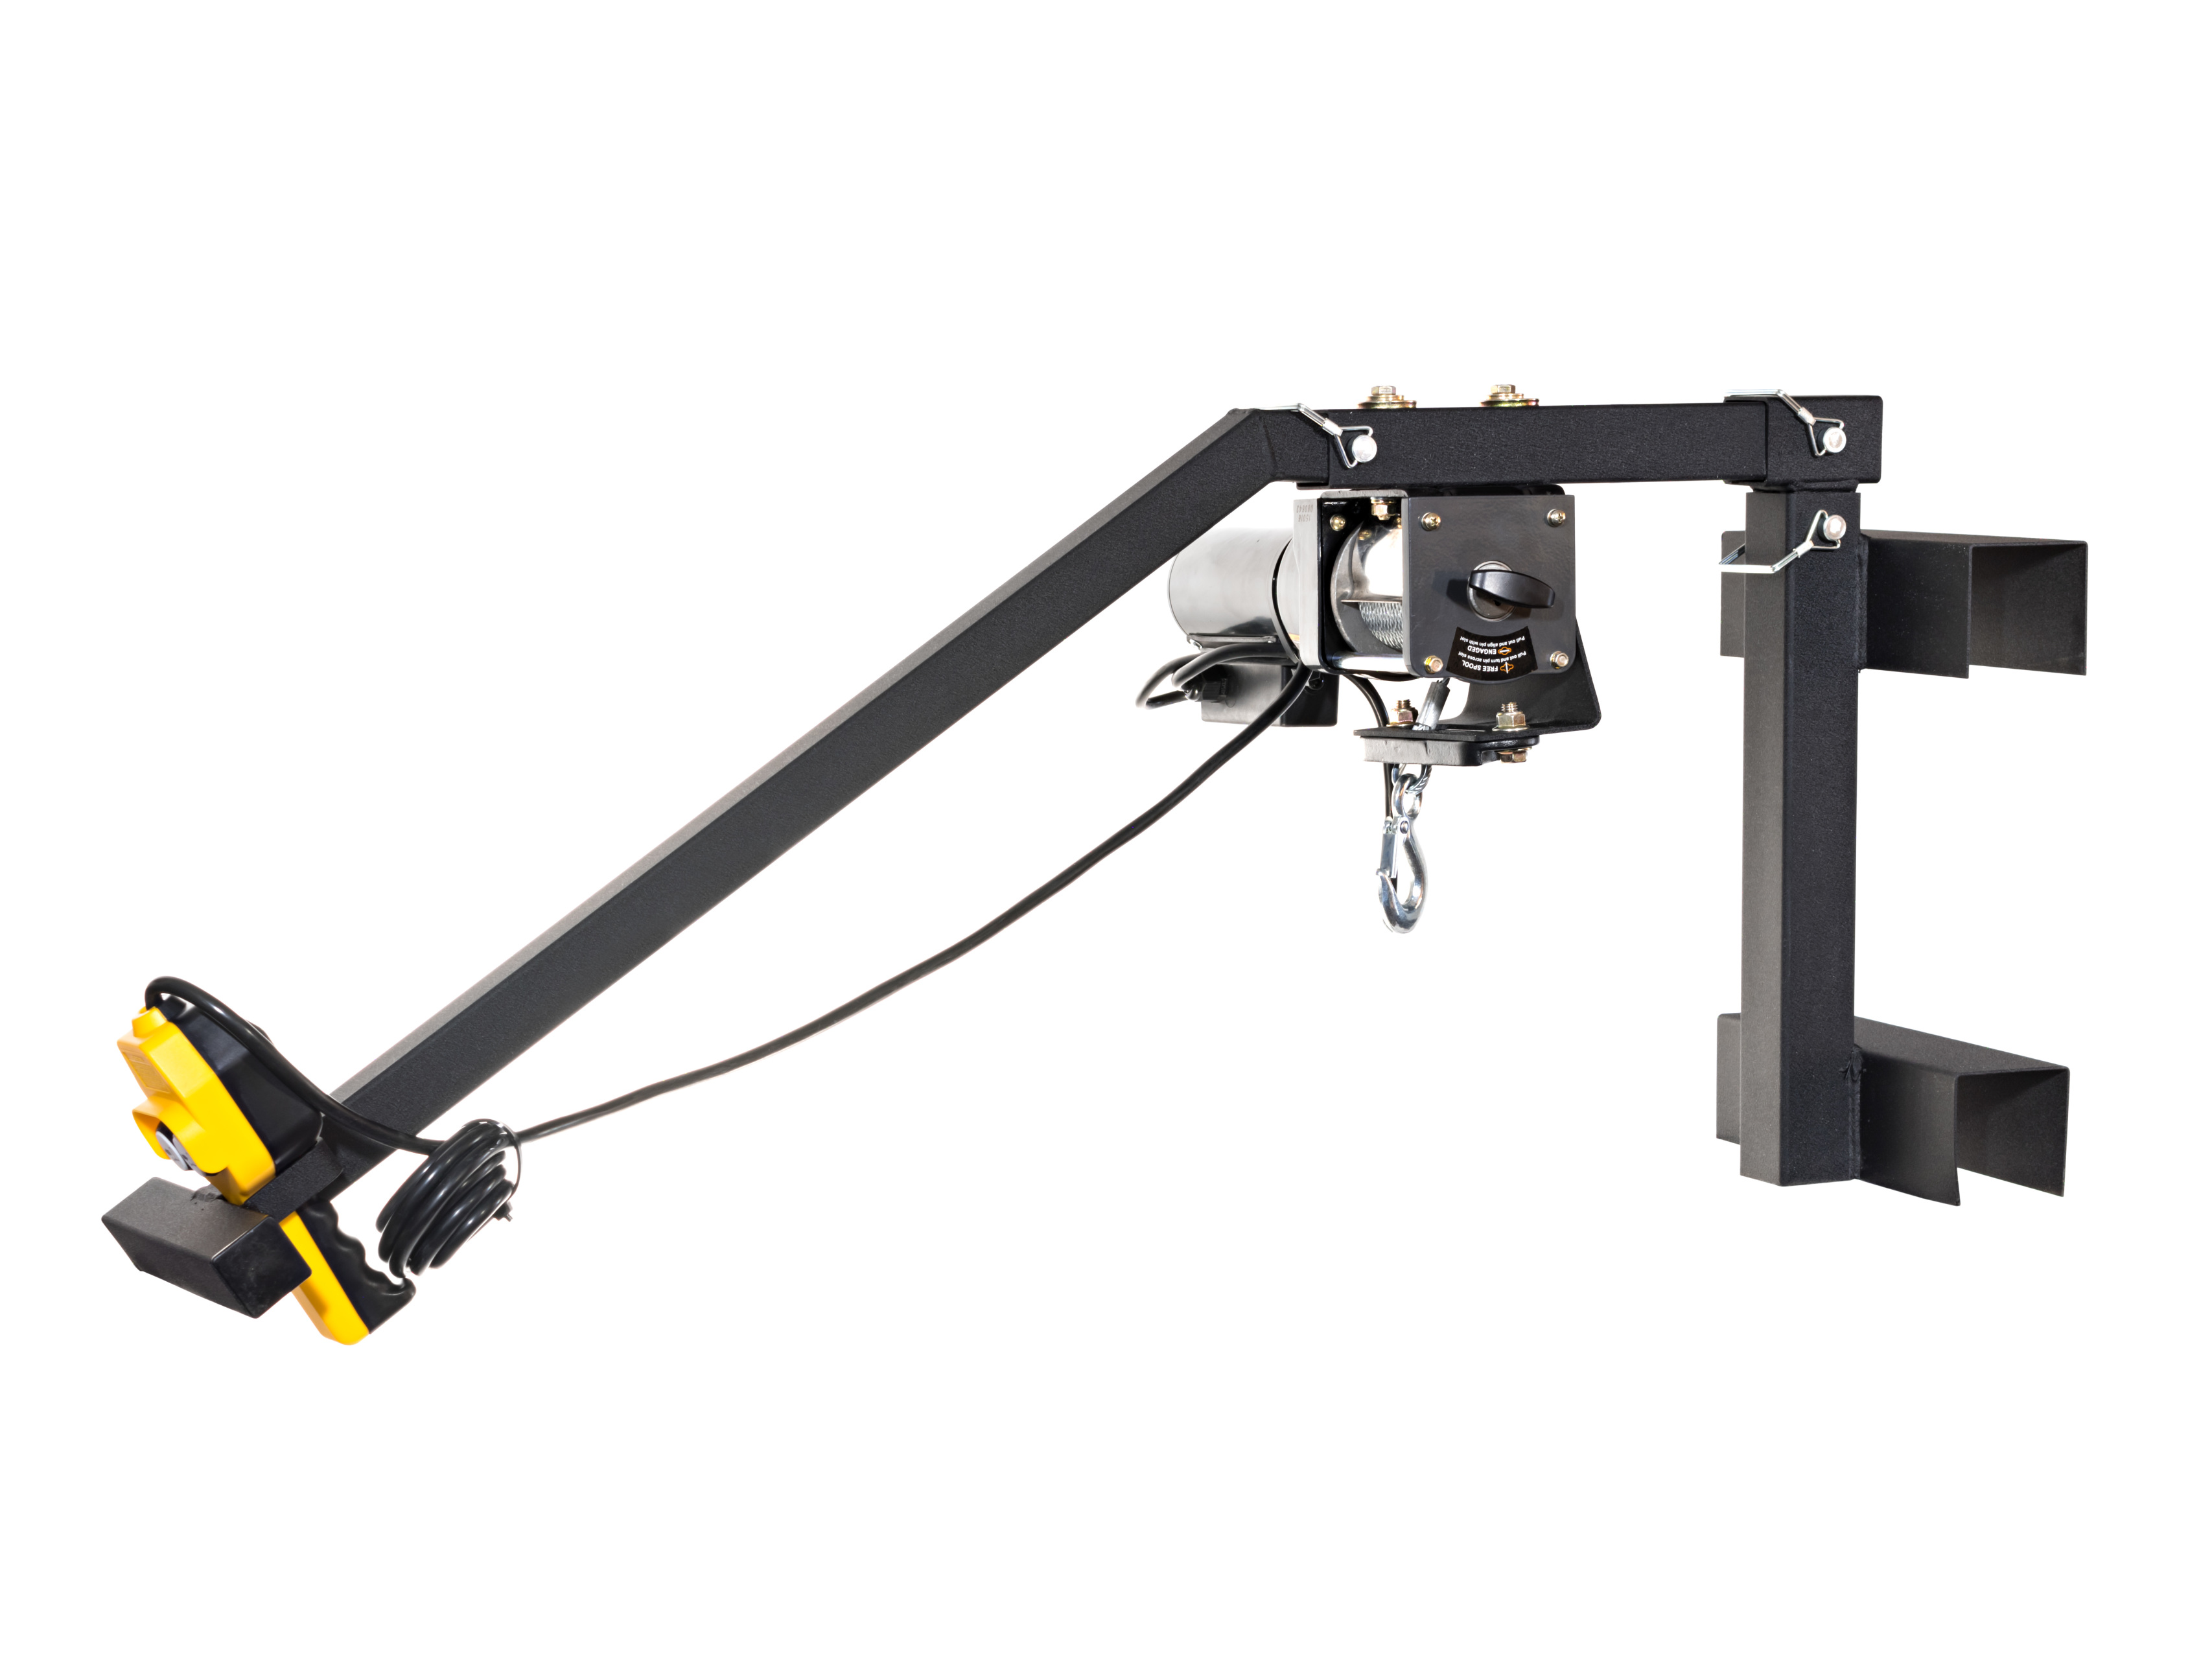 Ladder Crane ON SALE NOW! DON'T go another day without a Ladder Crane!